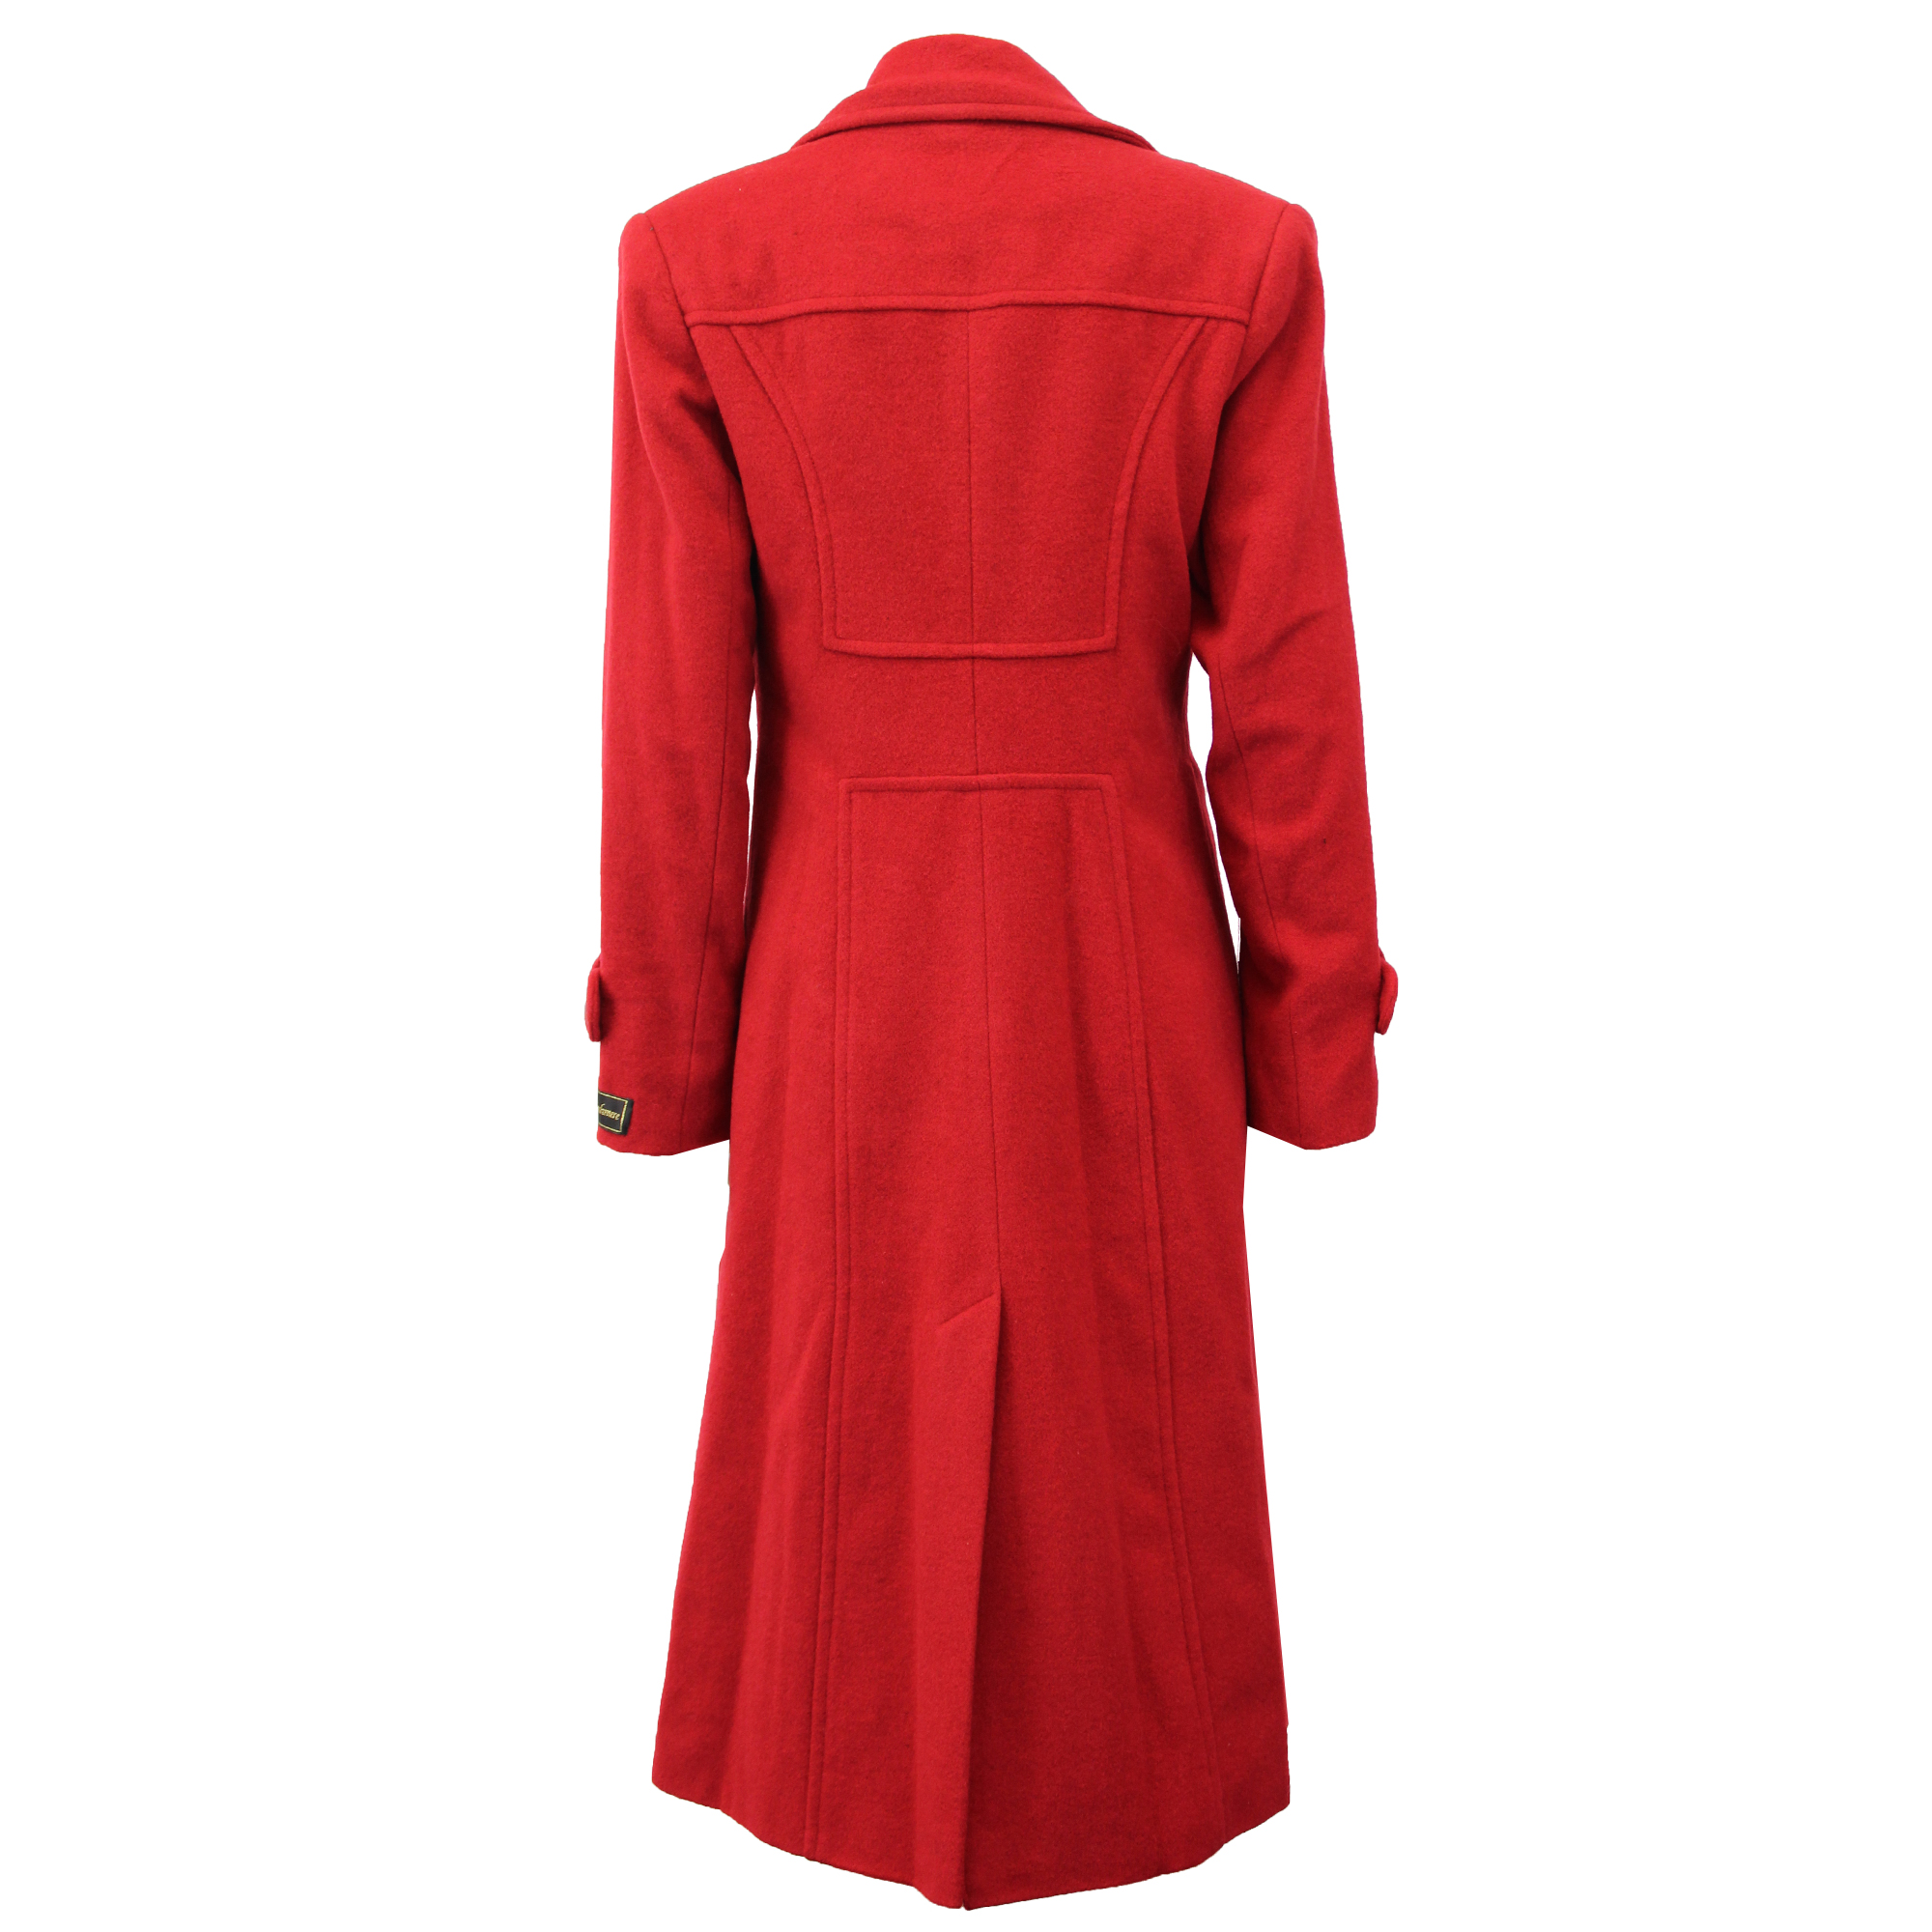 Ladies-Wool-Cashmere-Coat-Women-Jacket-Outerwear-Trench-Overcoat-Winter-Lined thumbnail 57